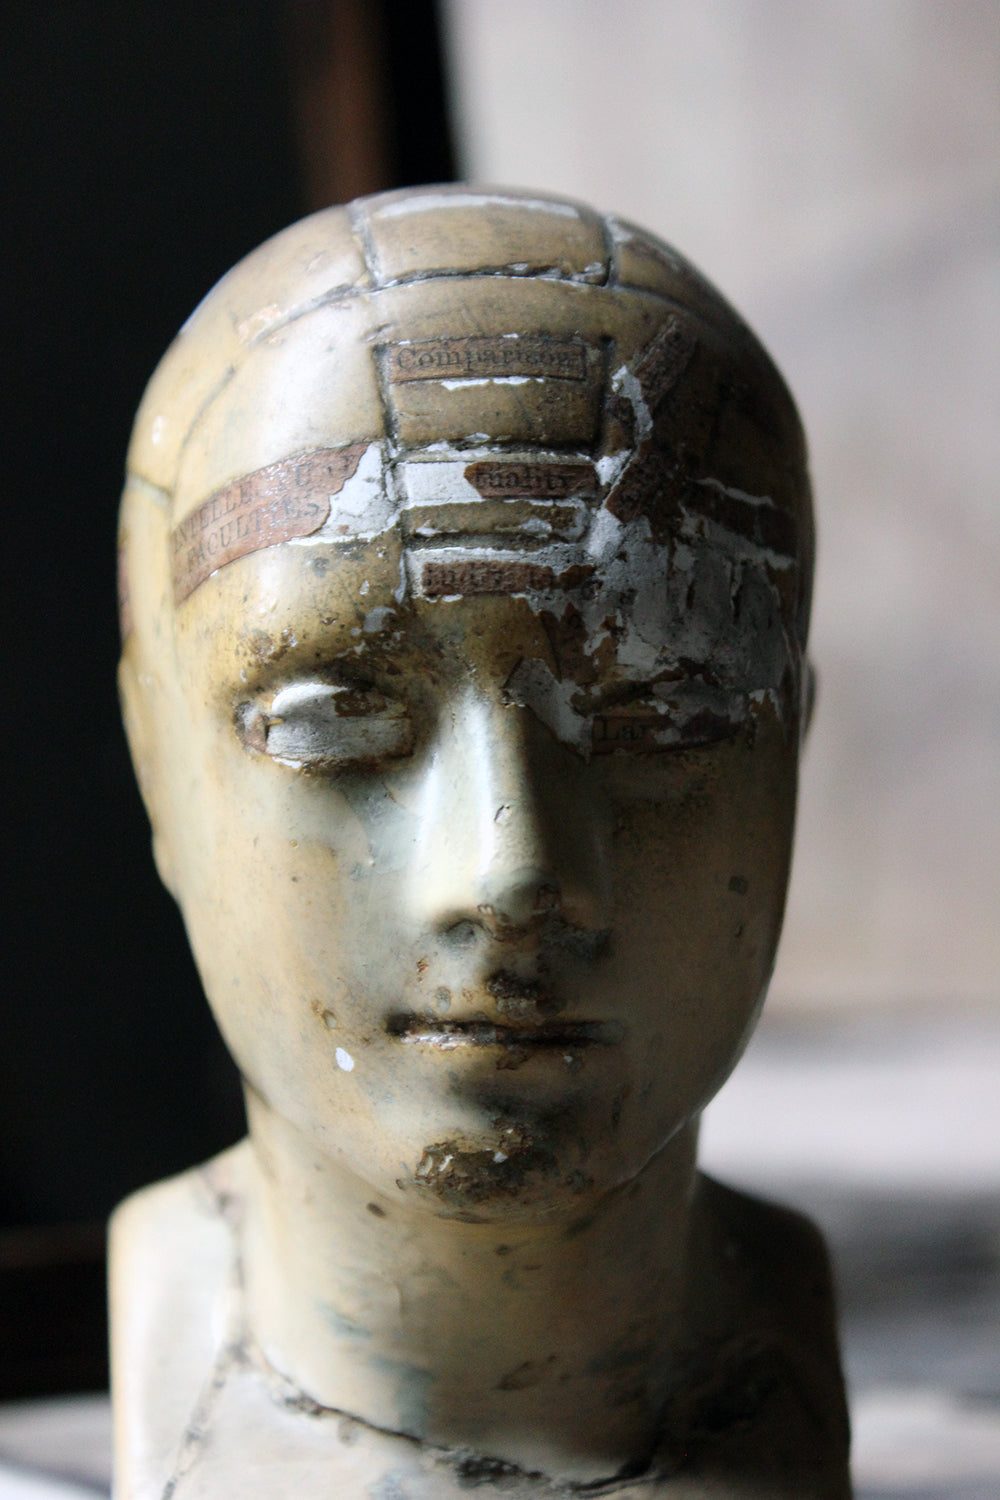 A Rare Plaster Phrenology Bust Prepared by A.L. Vago (1839-1896) London 1869